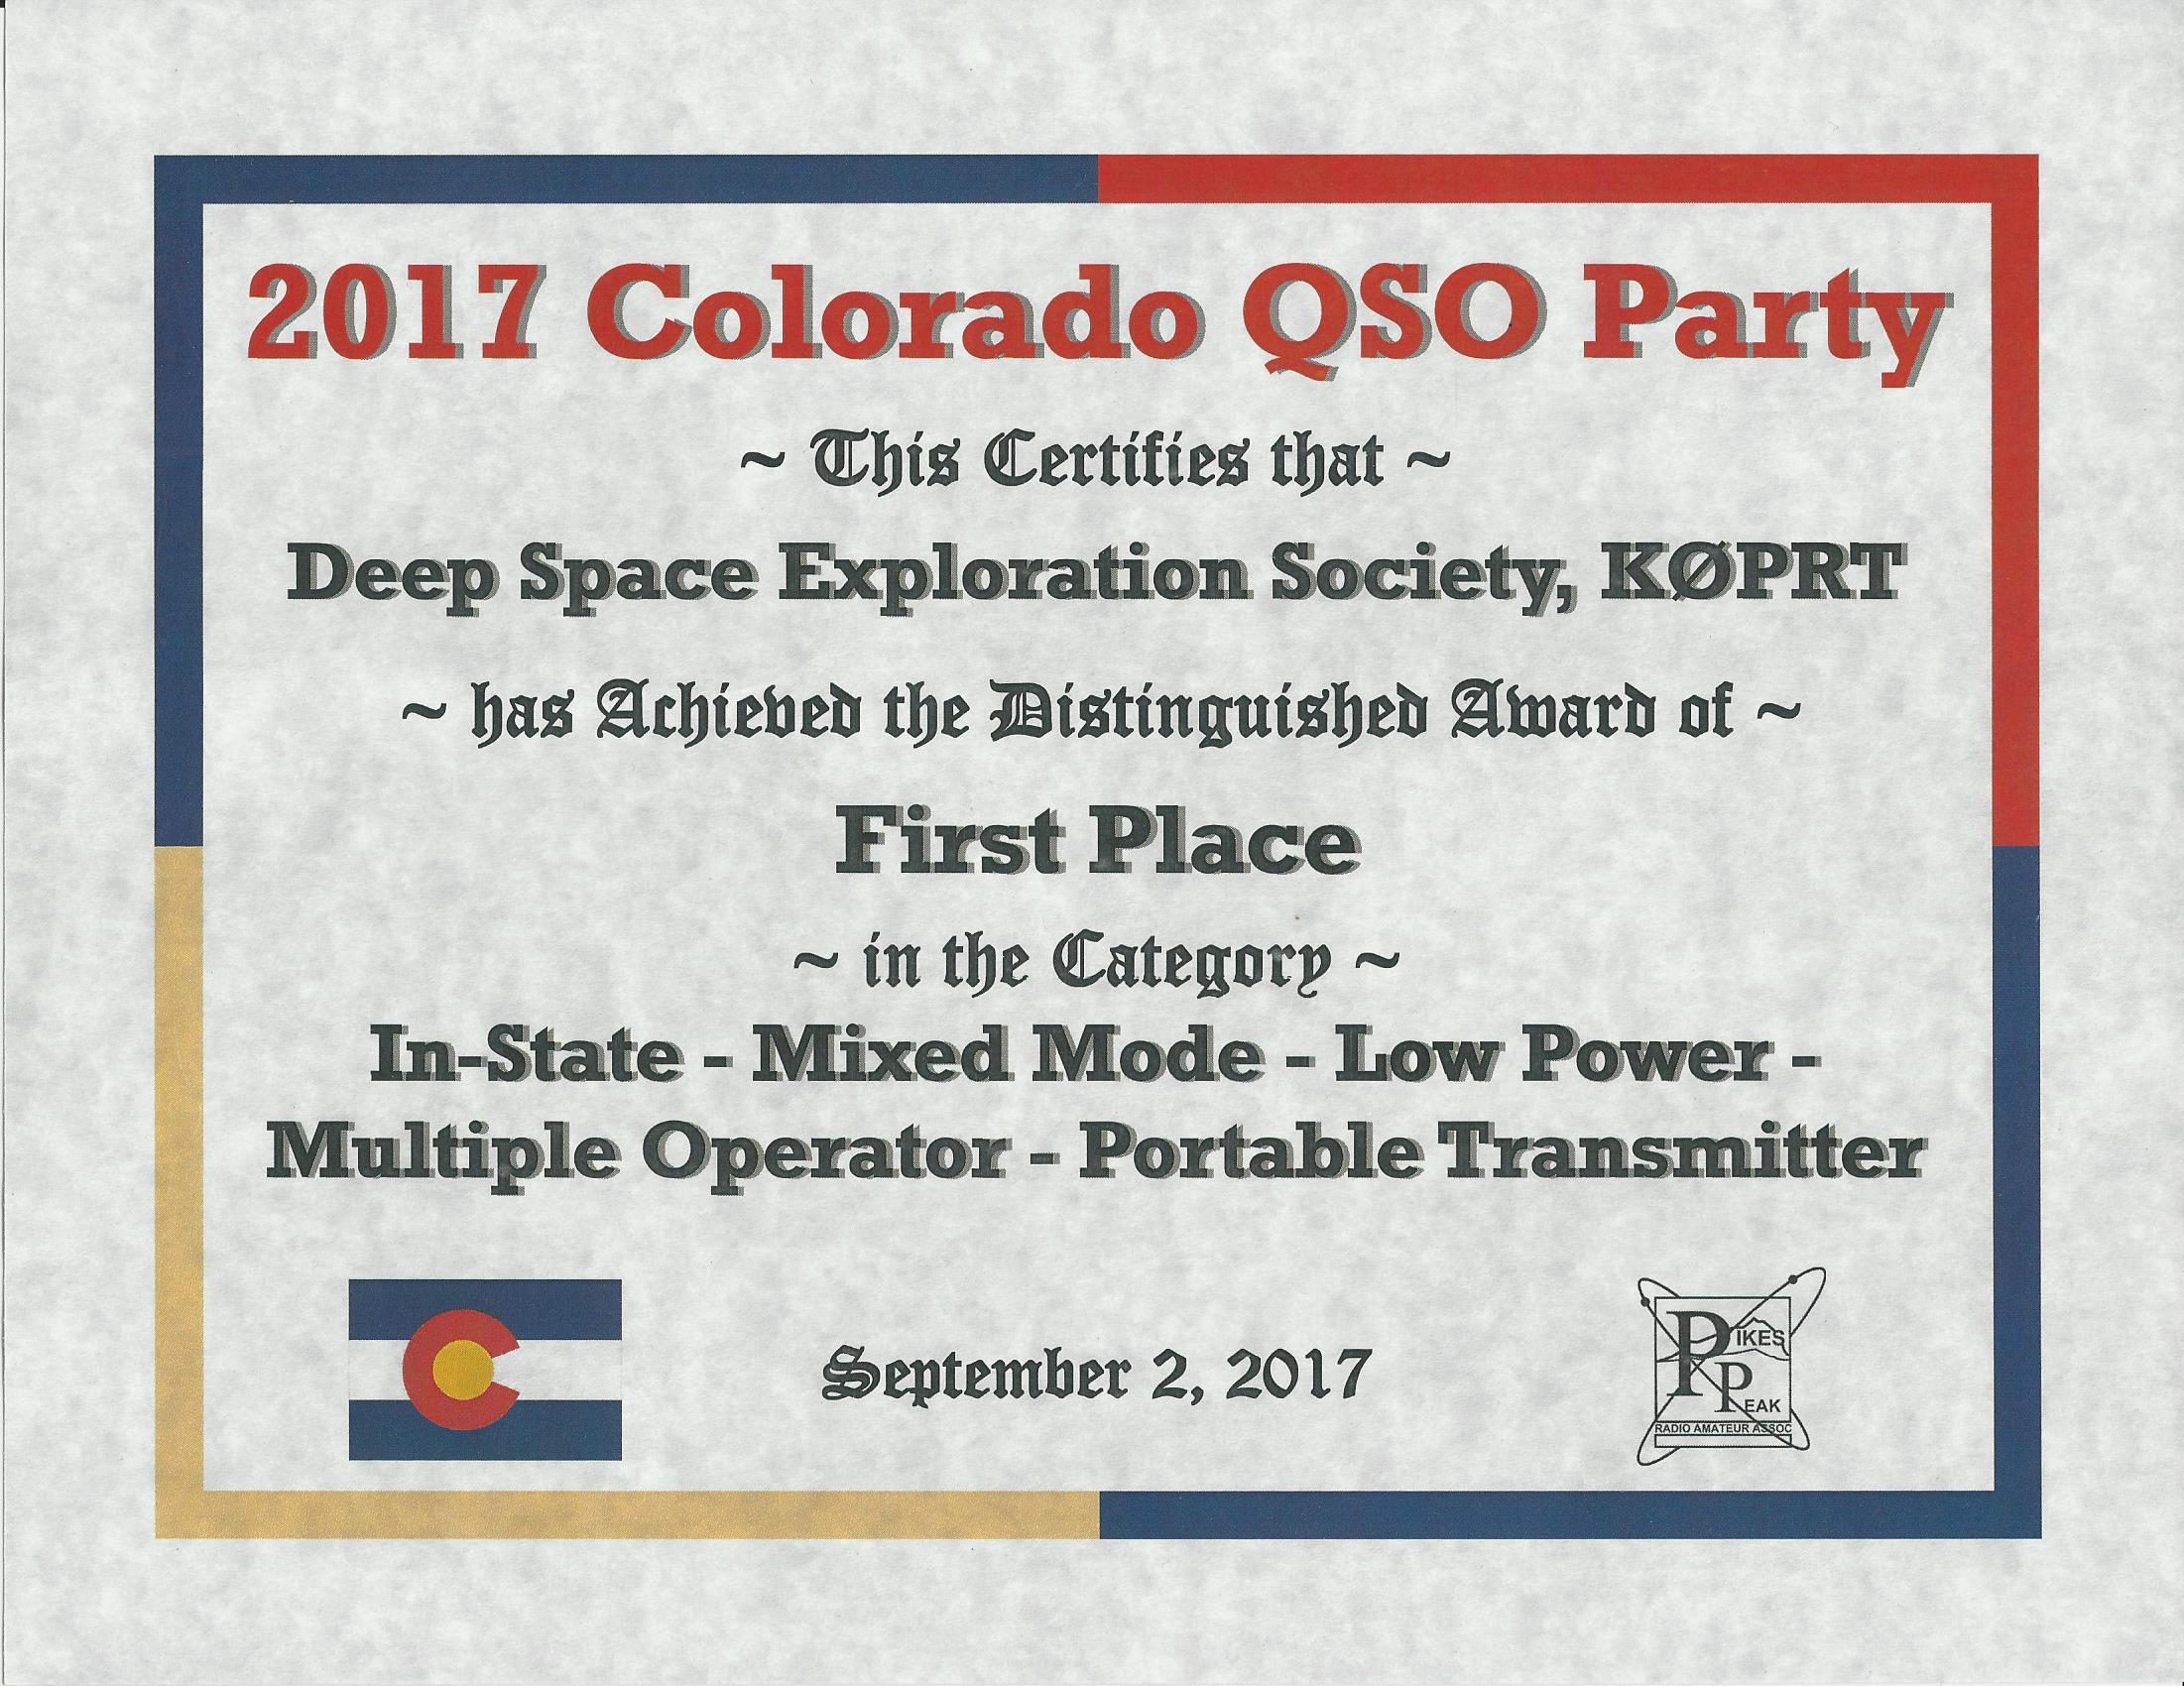 DSES Earned A First Place Award In The Ham Radio 2017 Colorado QSO K0prt Co  Qp 2017 Certificate 948 2 1st Place Certificate 1st Place Certificate  First Place Certificate